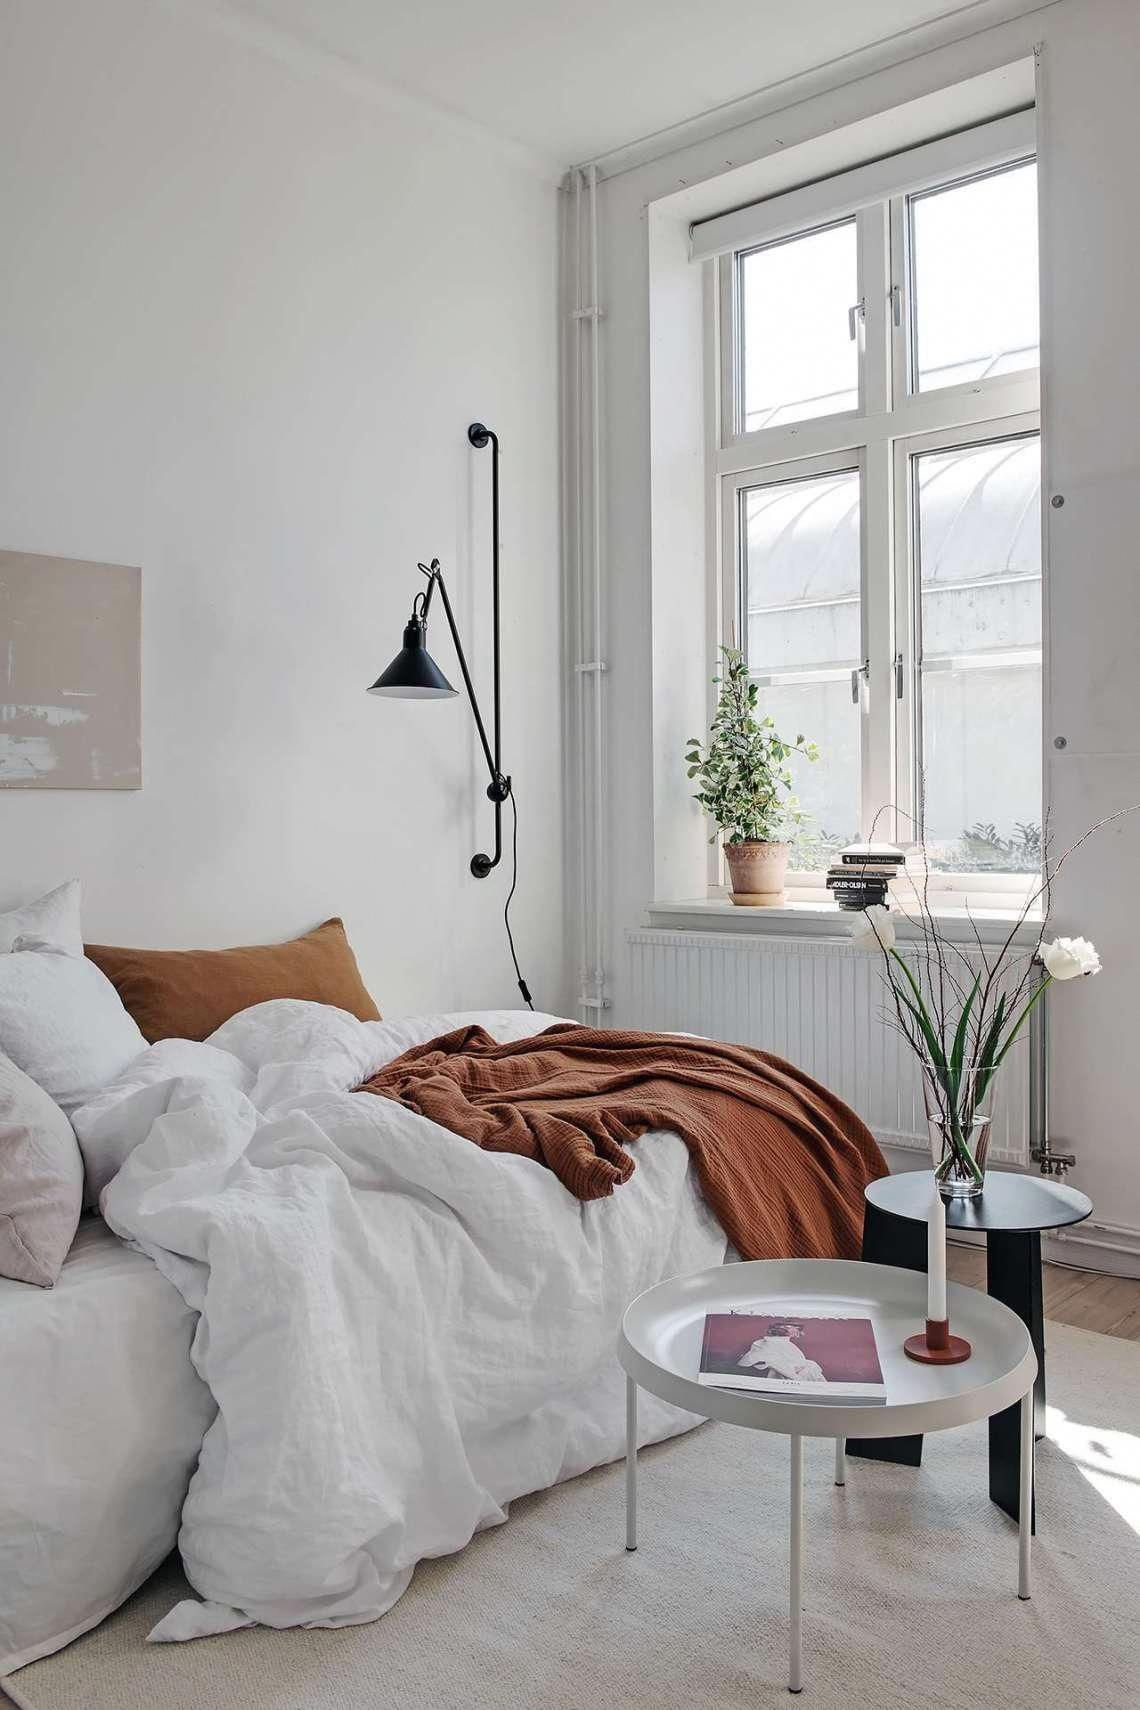 Small Yet Stylish Studio Home Coco Lapine Designcoco Lapine Design Minimalistbedroom In 2020 Bedroom Interior Interior Home Bedroom